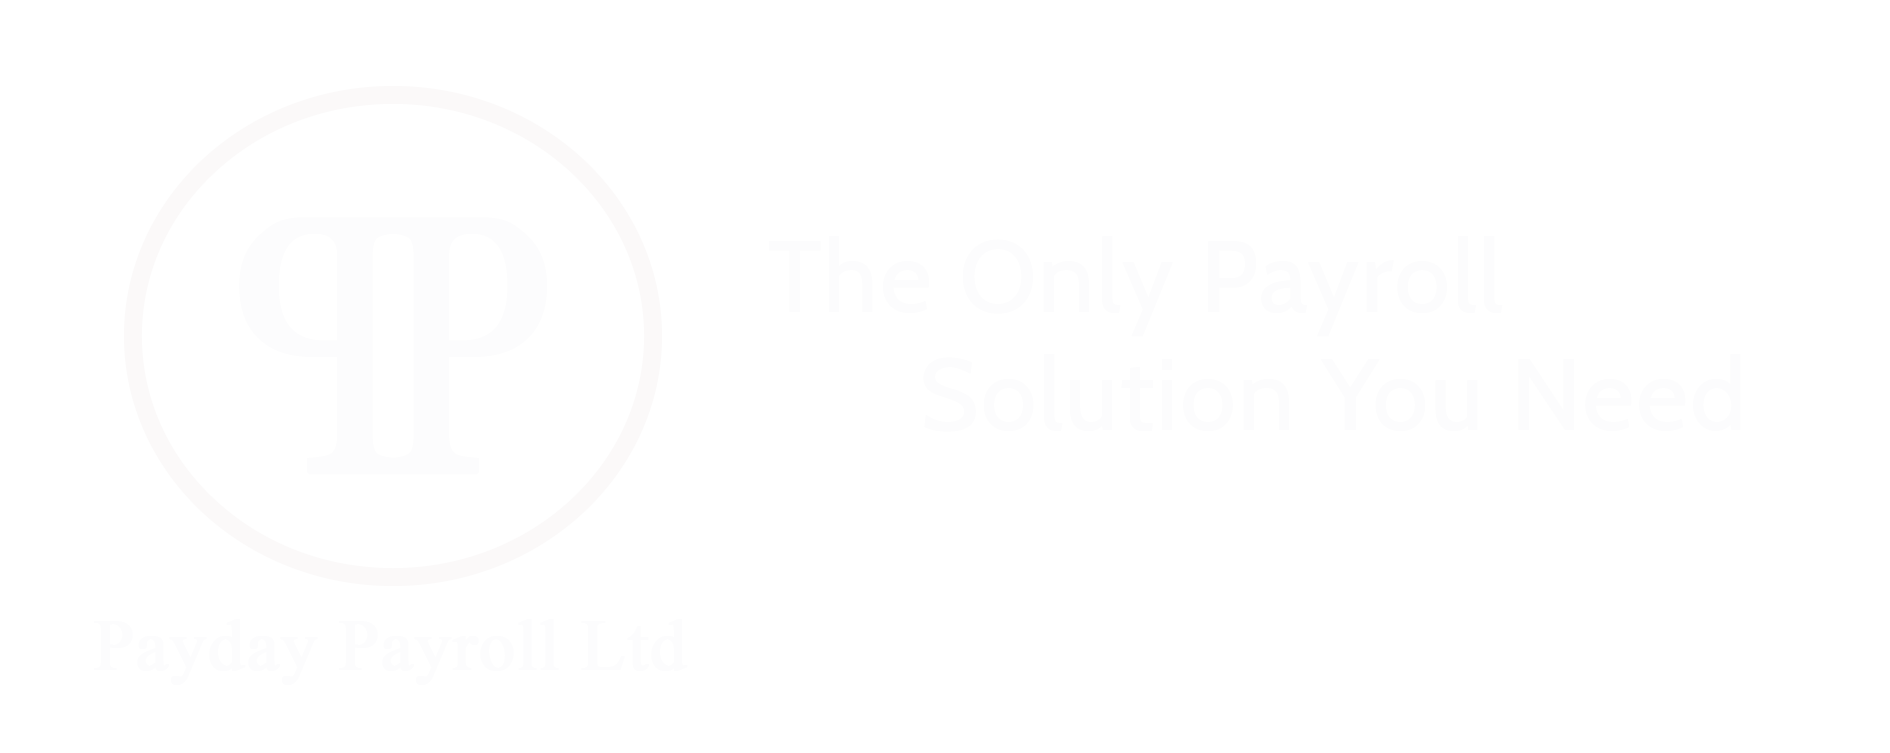 Payday Payroll Ltd